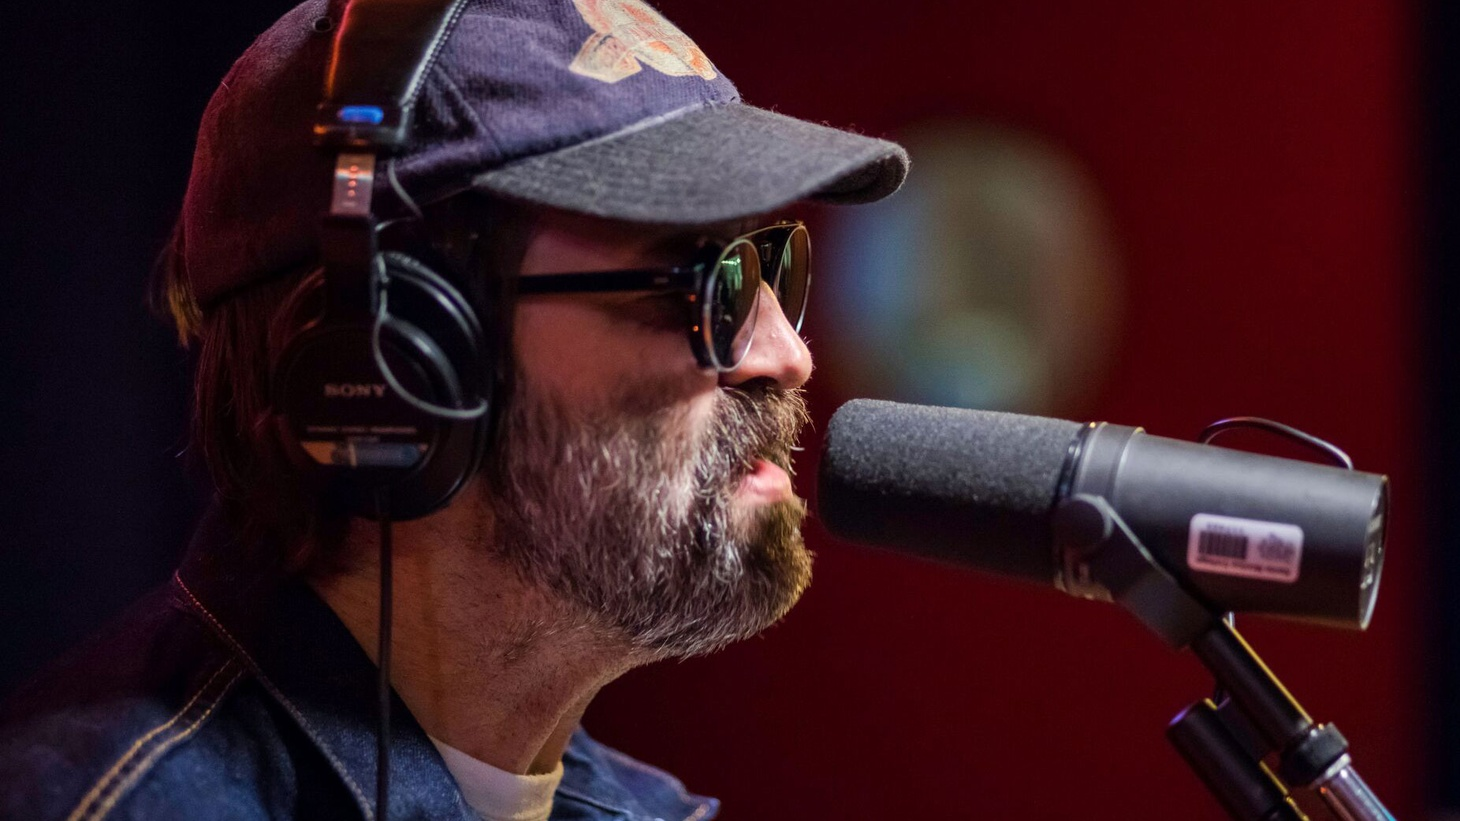 """EELS joined Morning Becomes Eclectic to launch their world tour and to play songs from their new album,The Deconstruction. They left us with an exclusive version of """"I Like The Way This Is Going"""" and the backstory of the song."""